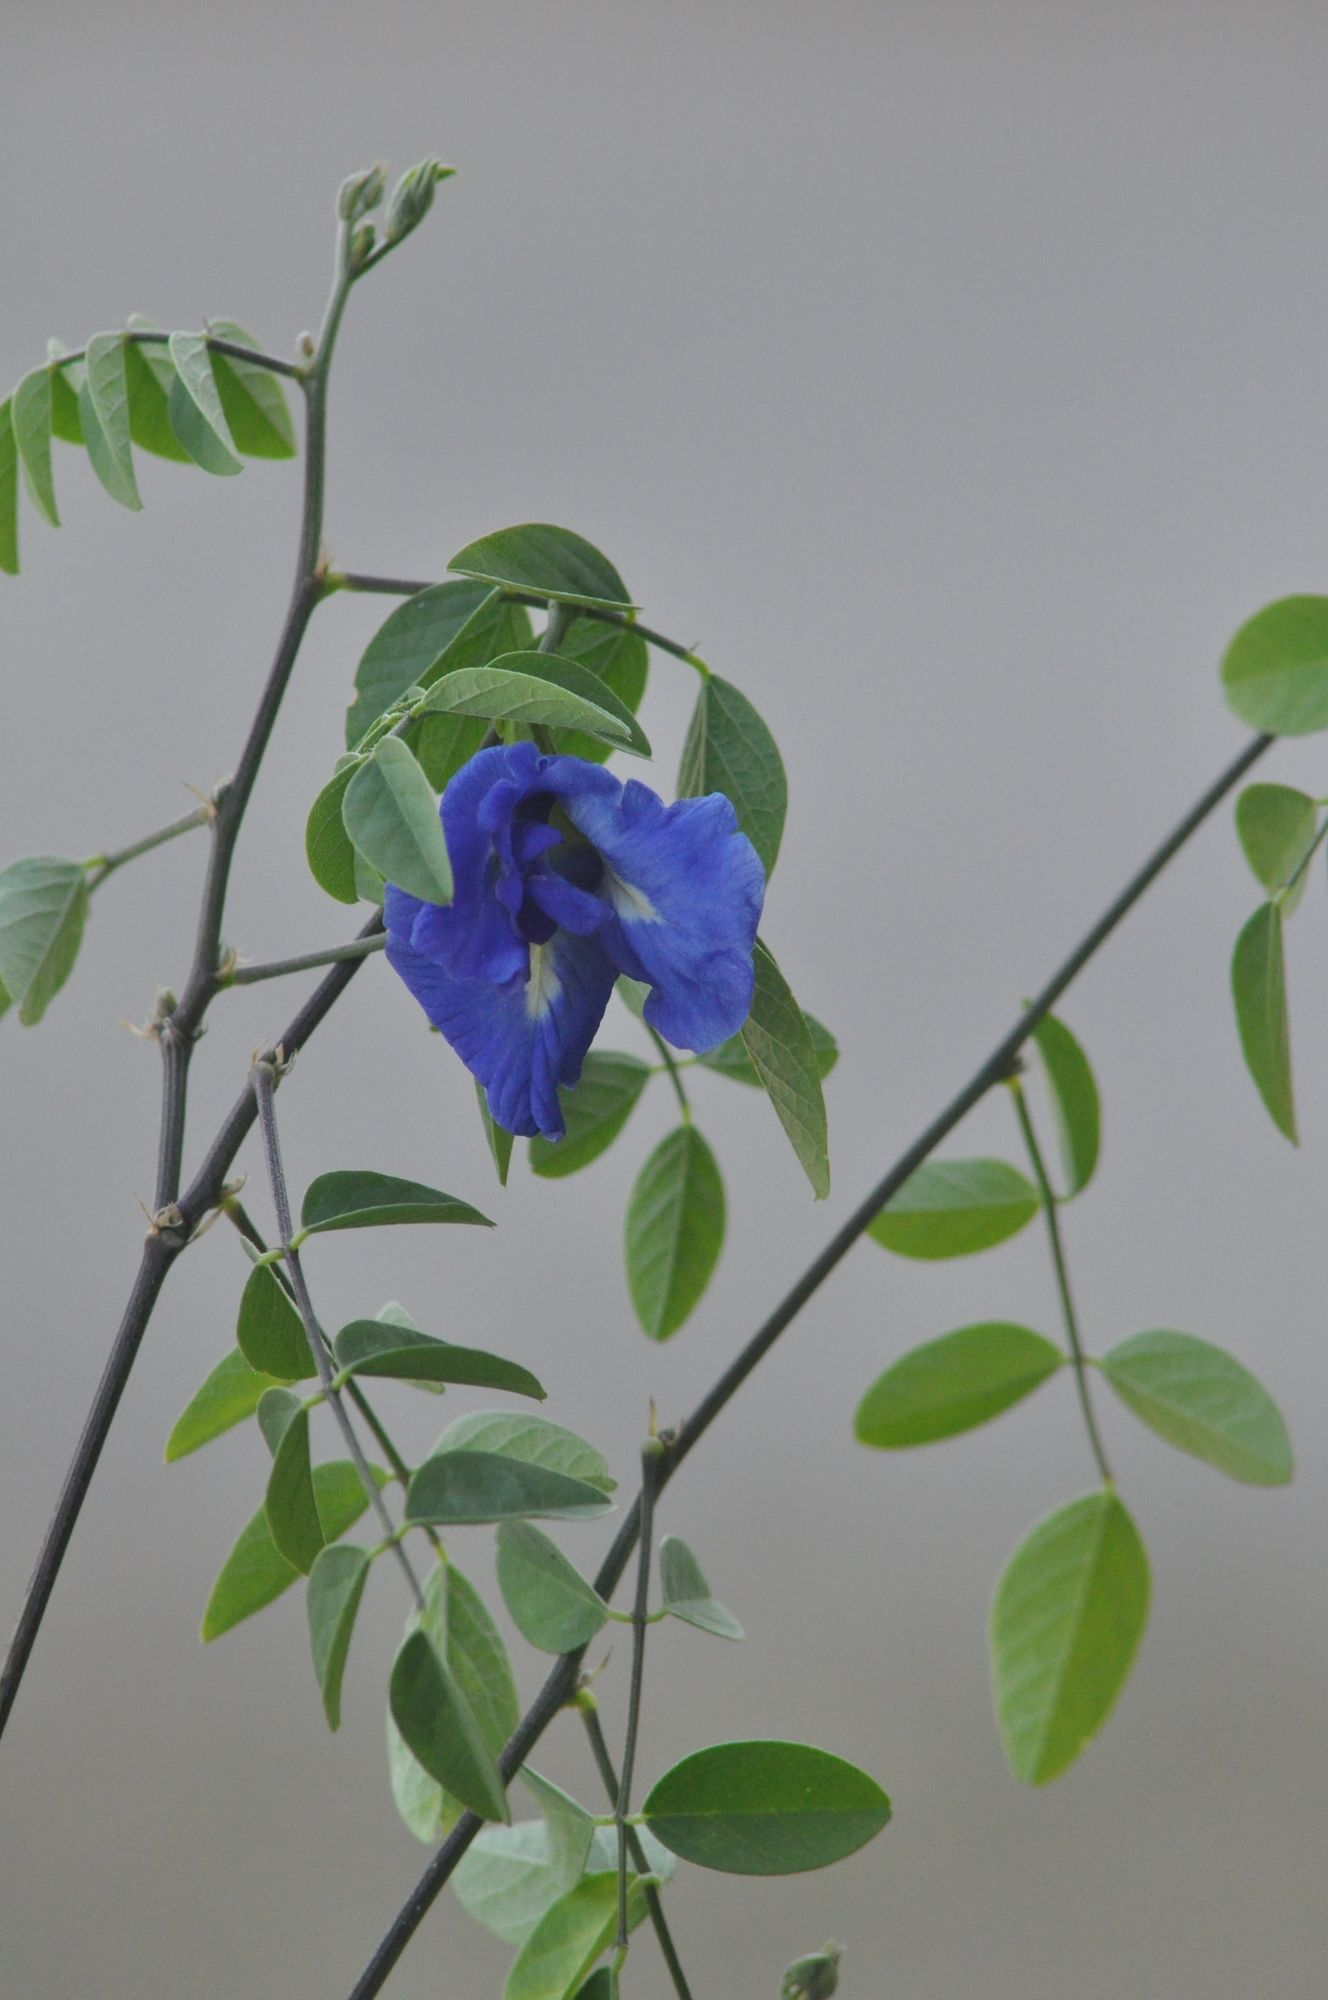 BLUE BUTTERFLY PEA VINE FLOWER FROM THAILAND IN PROVENCE BY SABINE FAURE